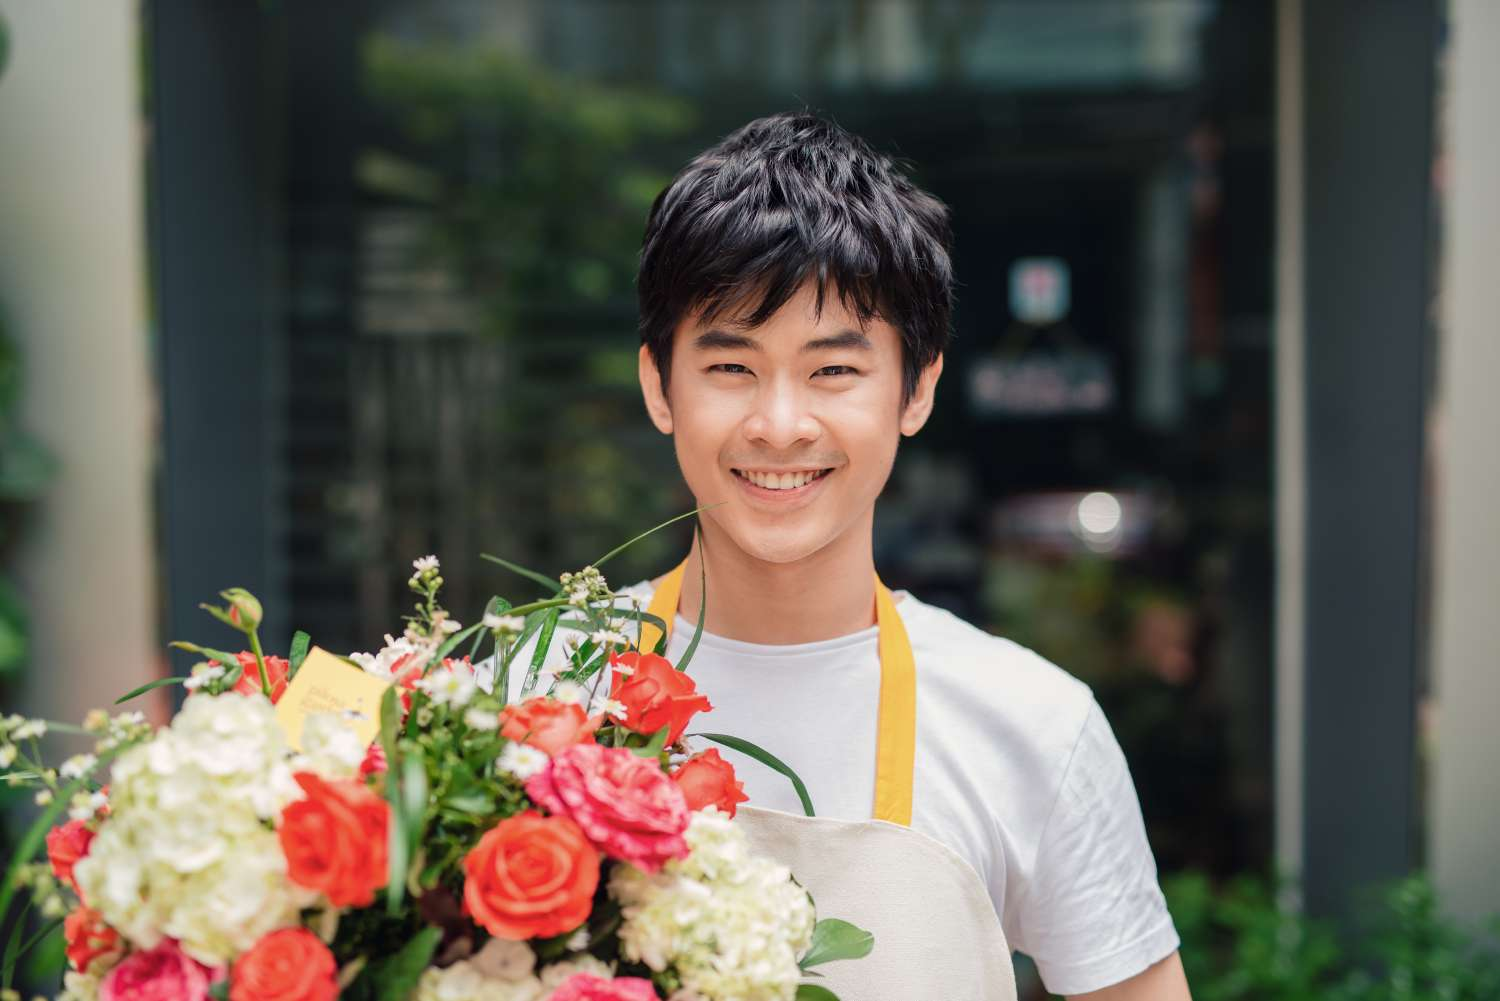 Florist considers the value of data quality when it comes to good customer data management